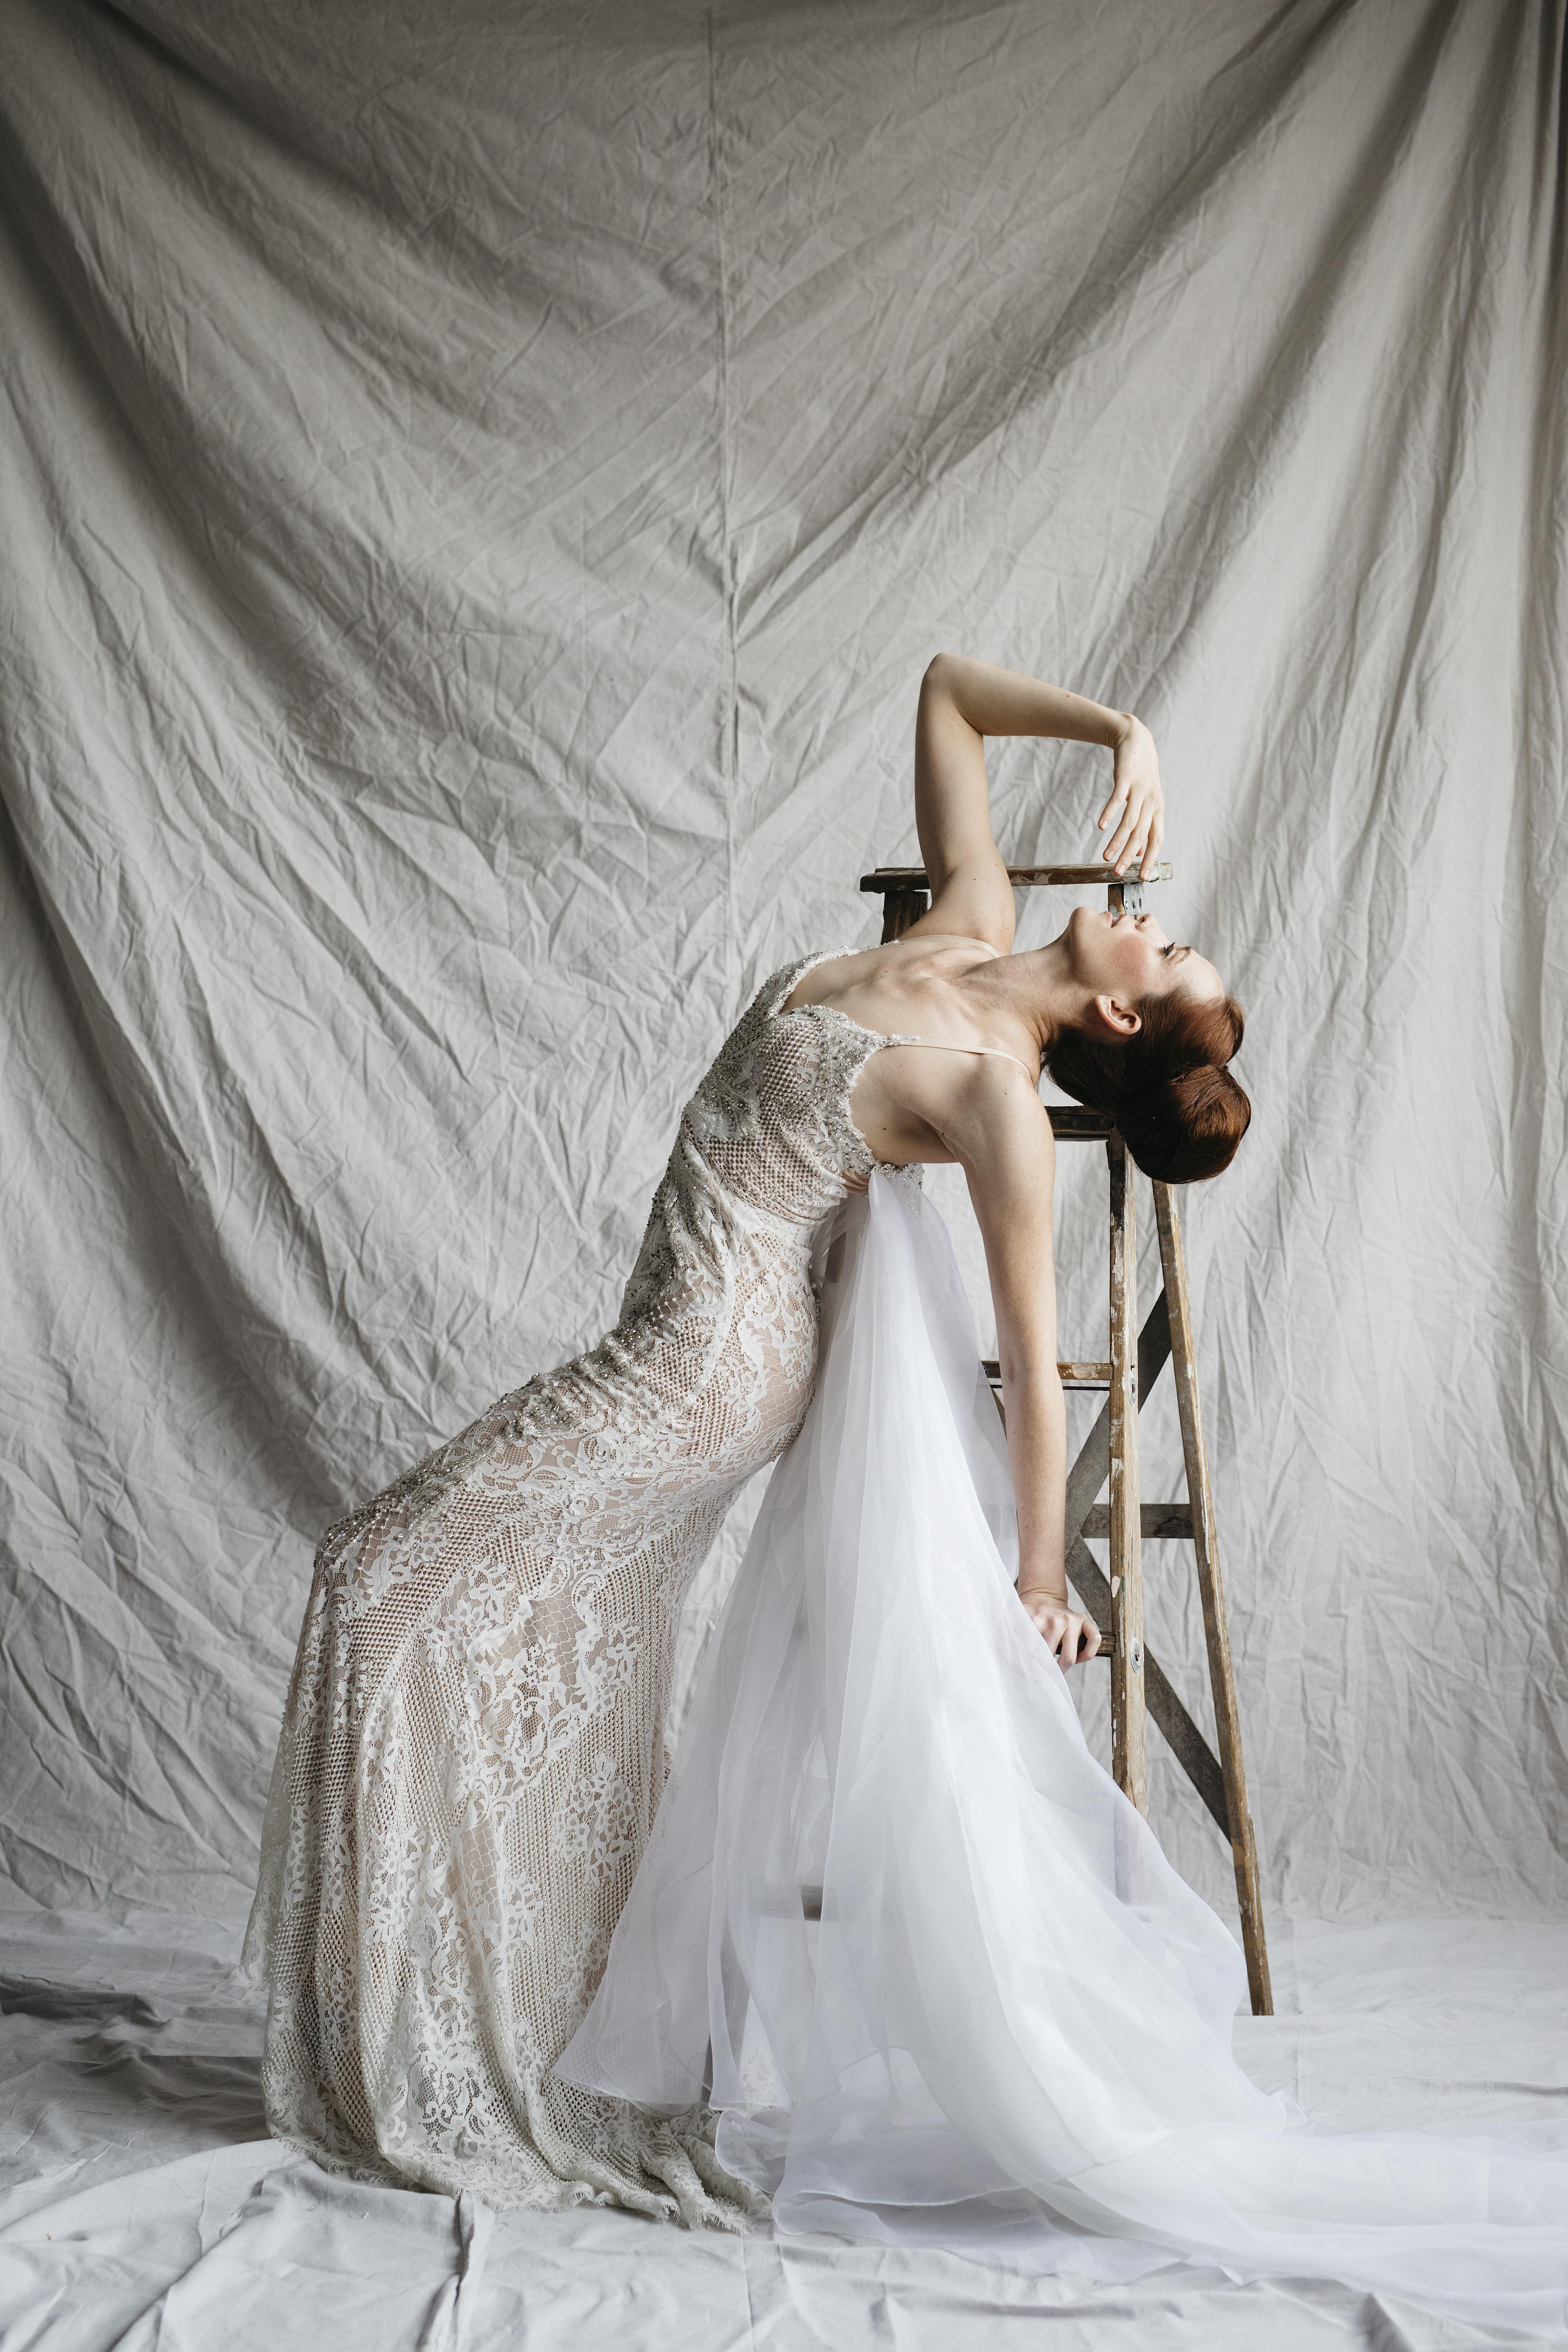 Wedding Gowns and Ballet in the City